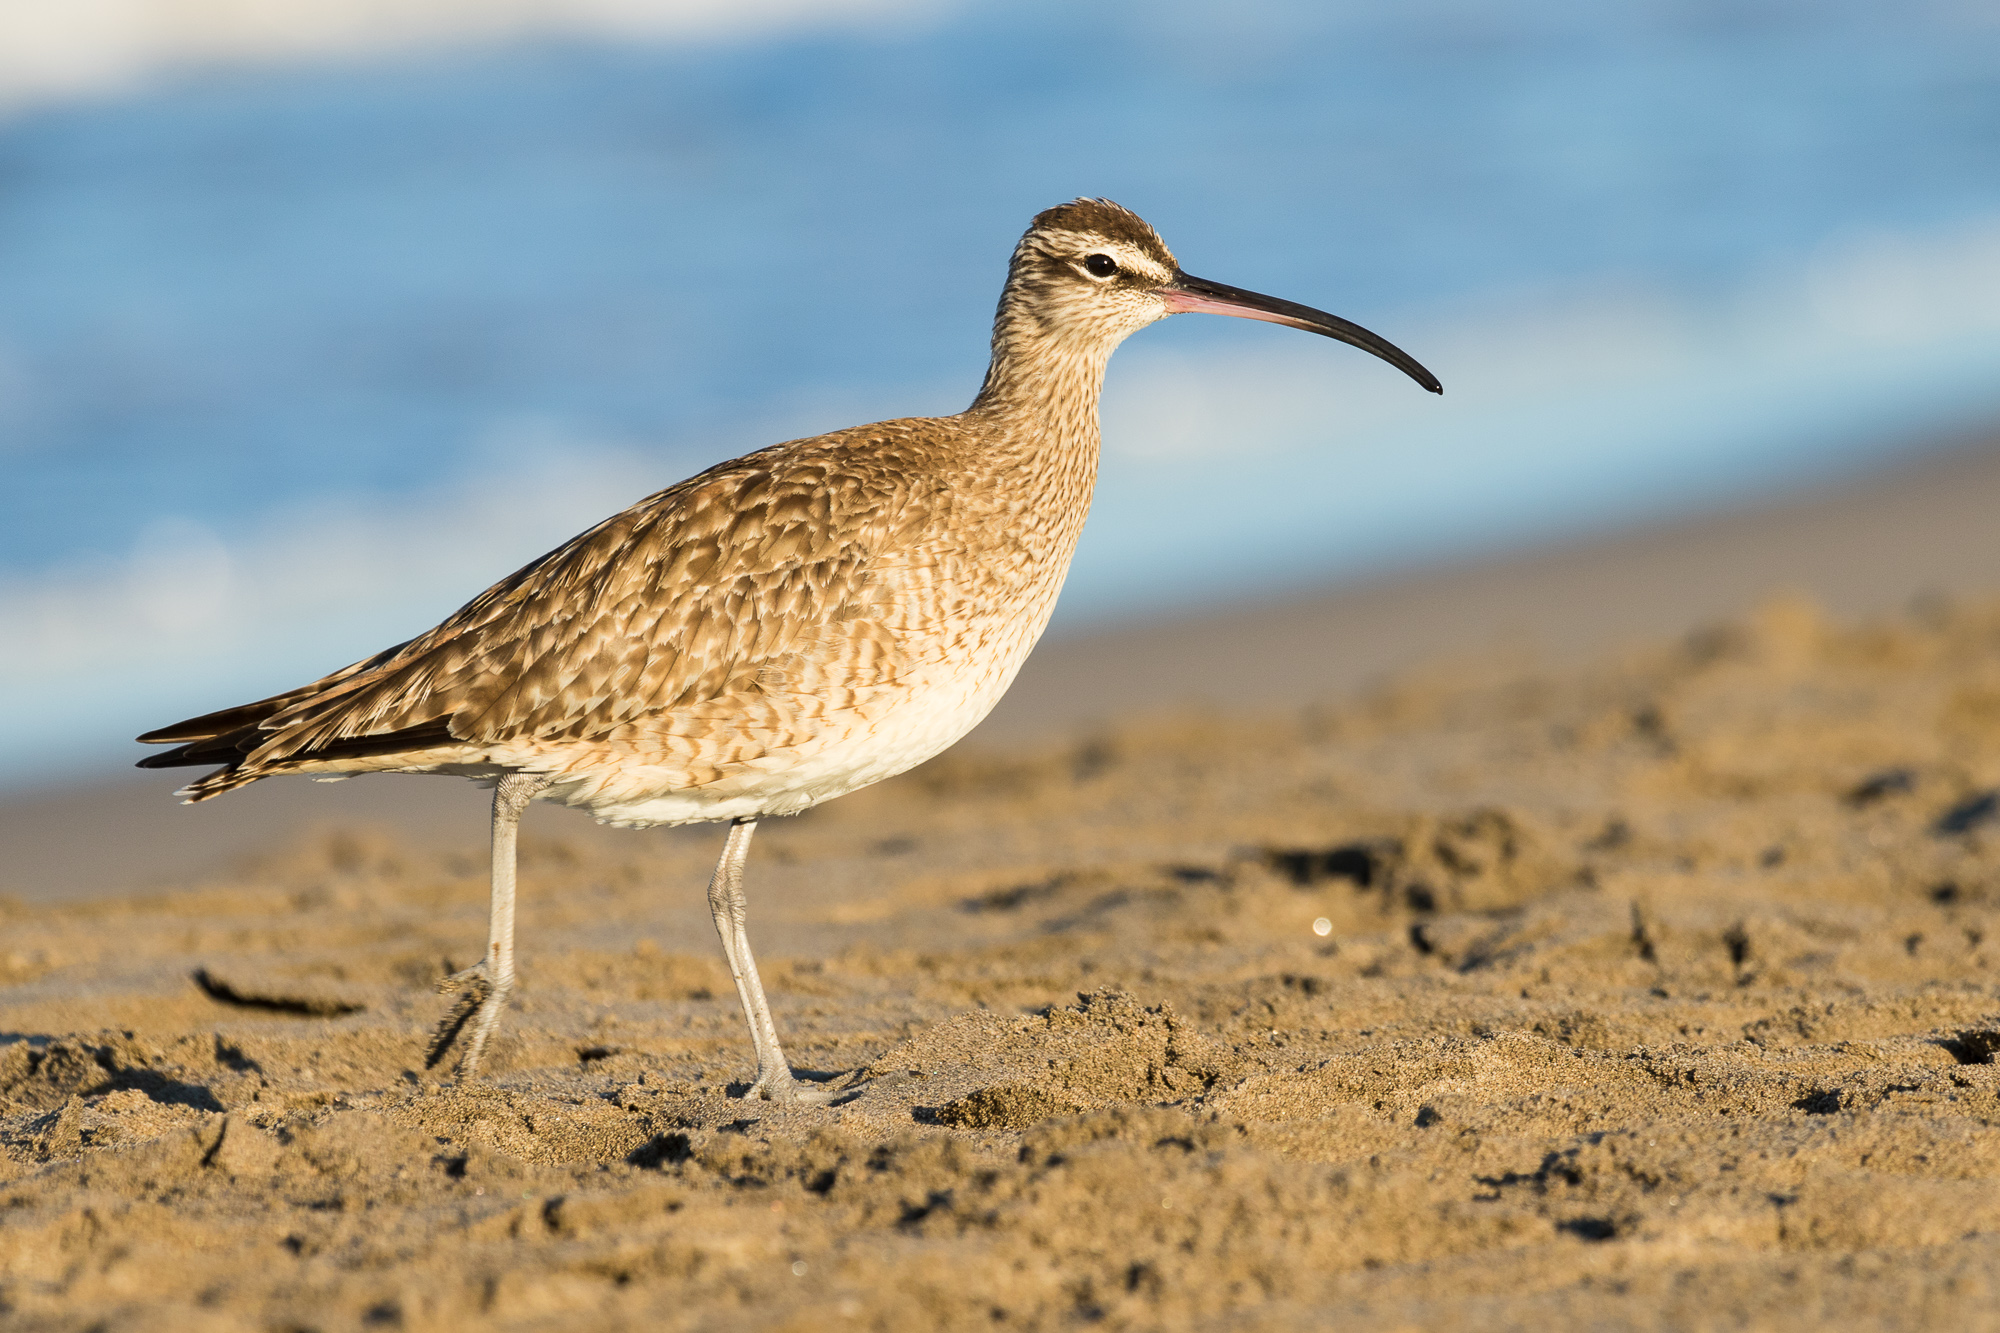 A whimbrel struts across a sandy beach, Puerto Vallarta, Mexico